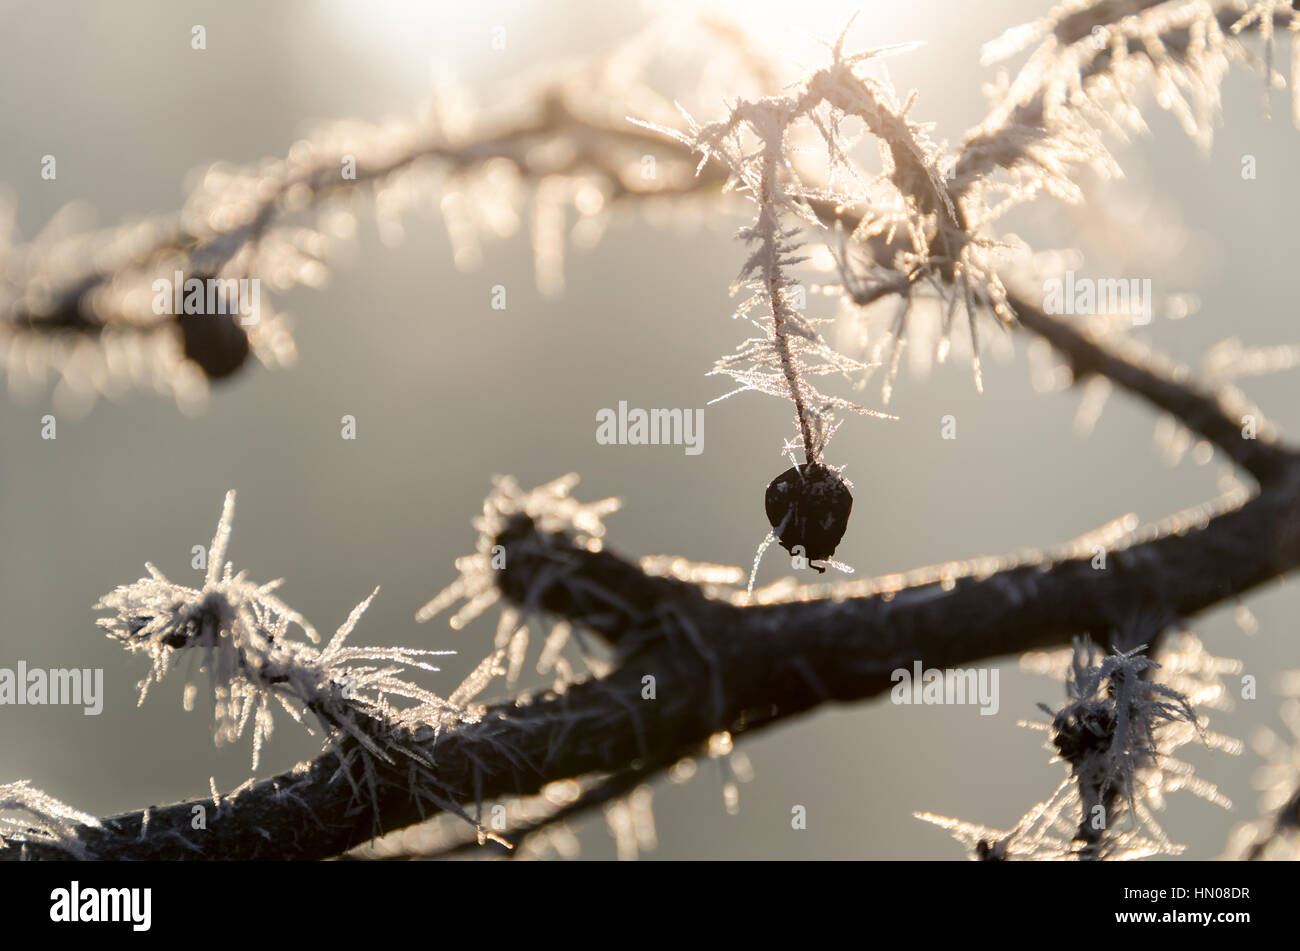 Frozen branches in sunlight, Munich, Germany Stock Photo